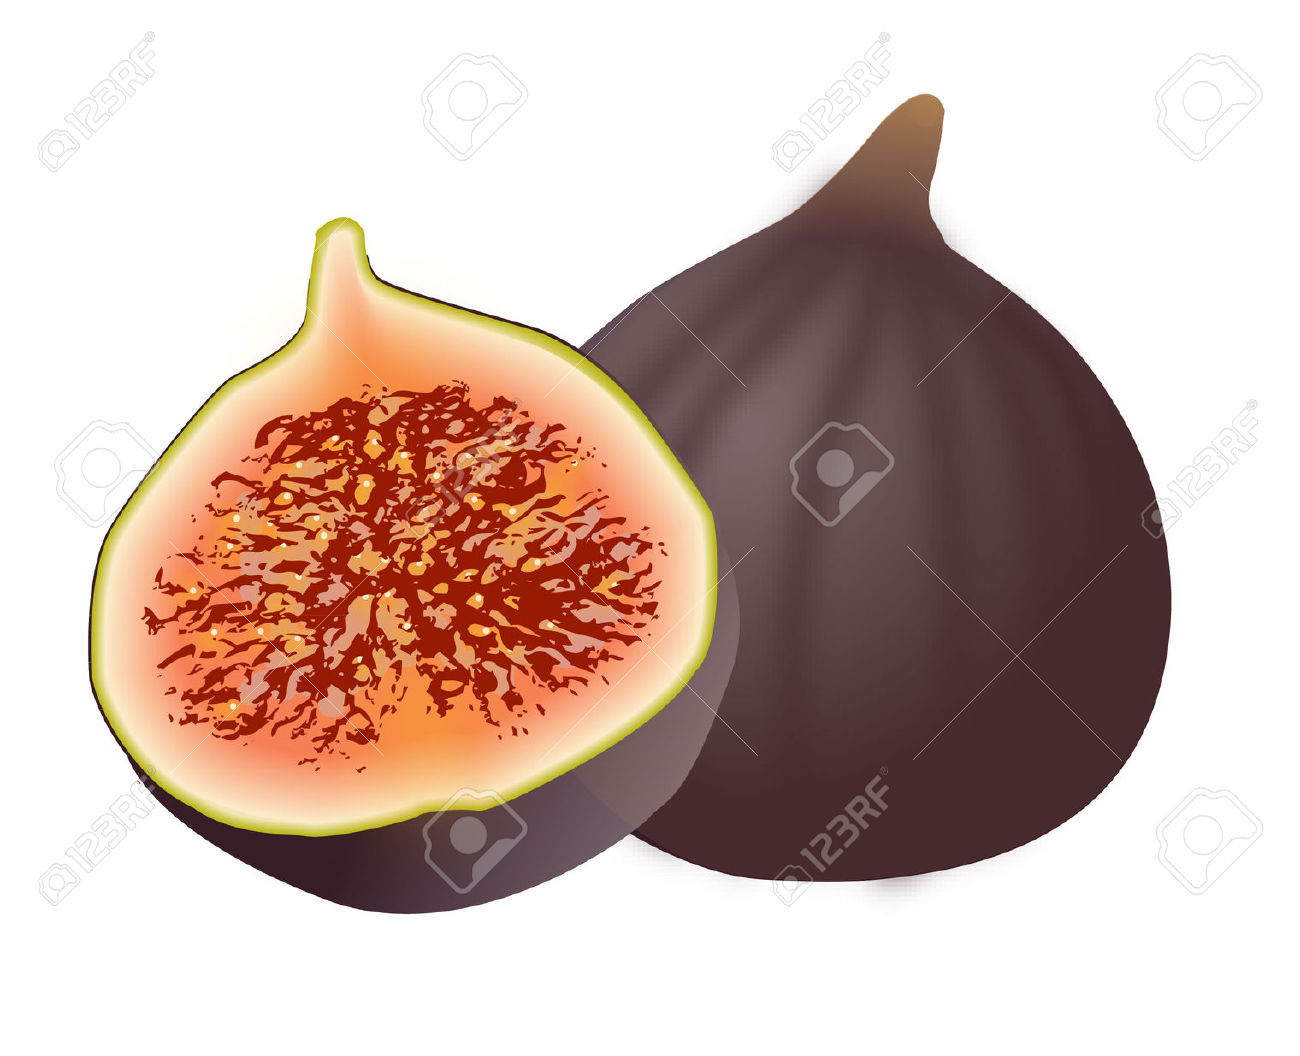 Figs clipart #16